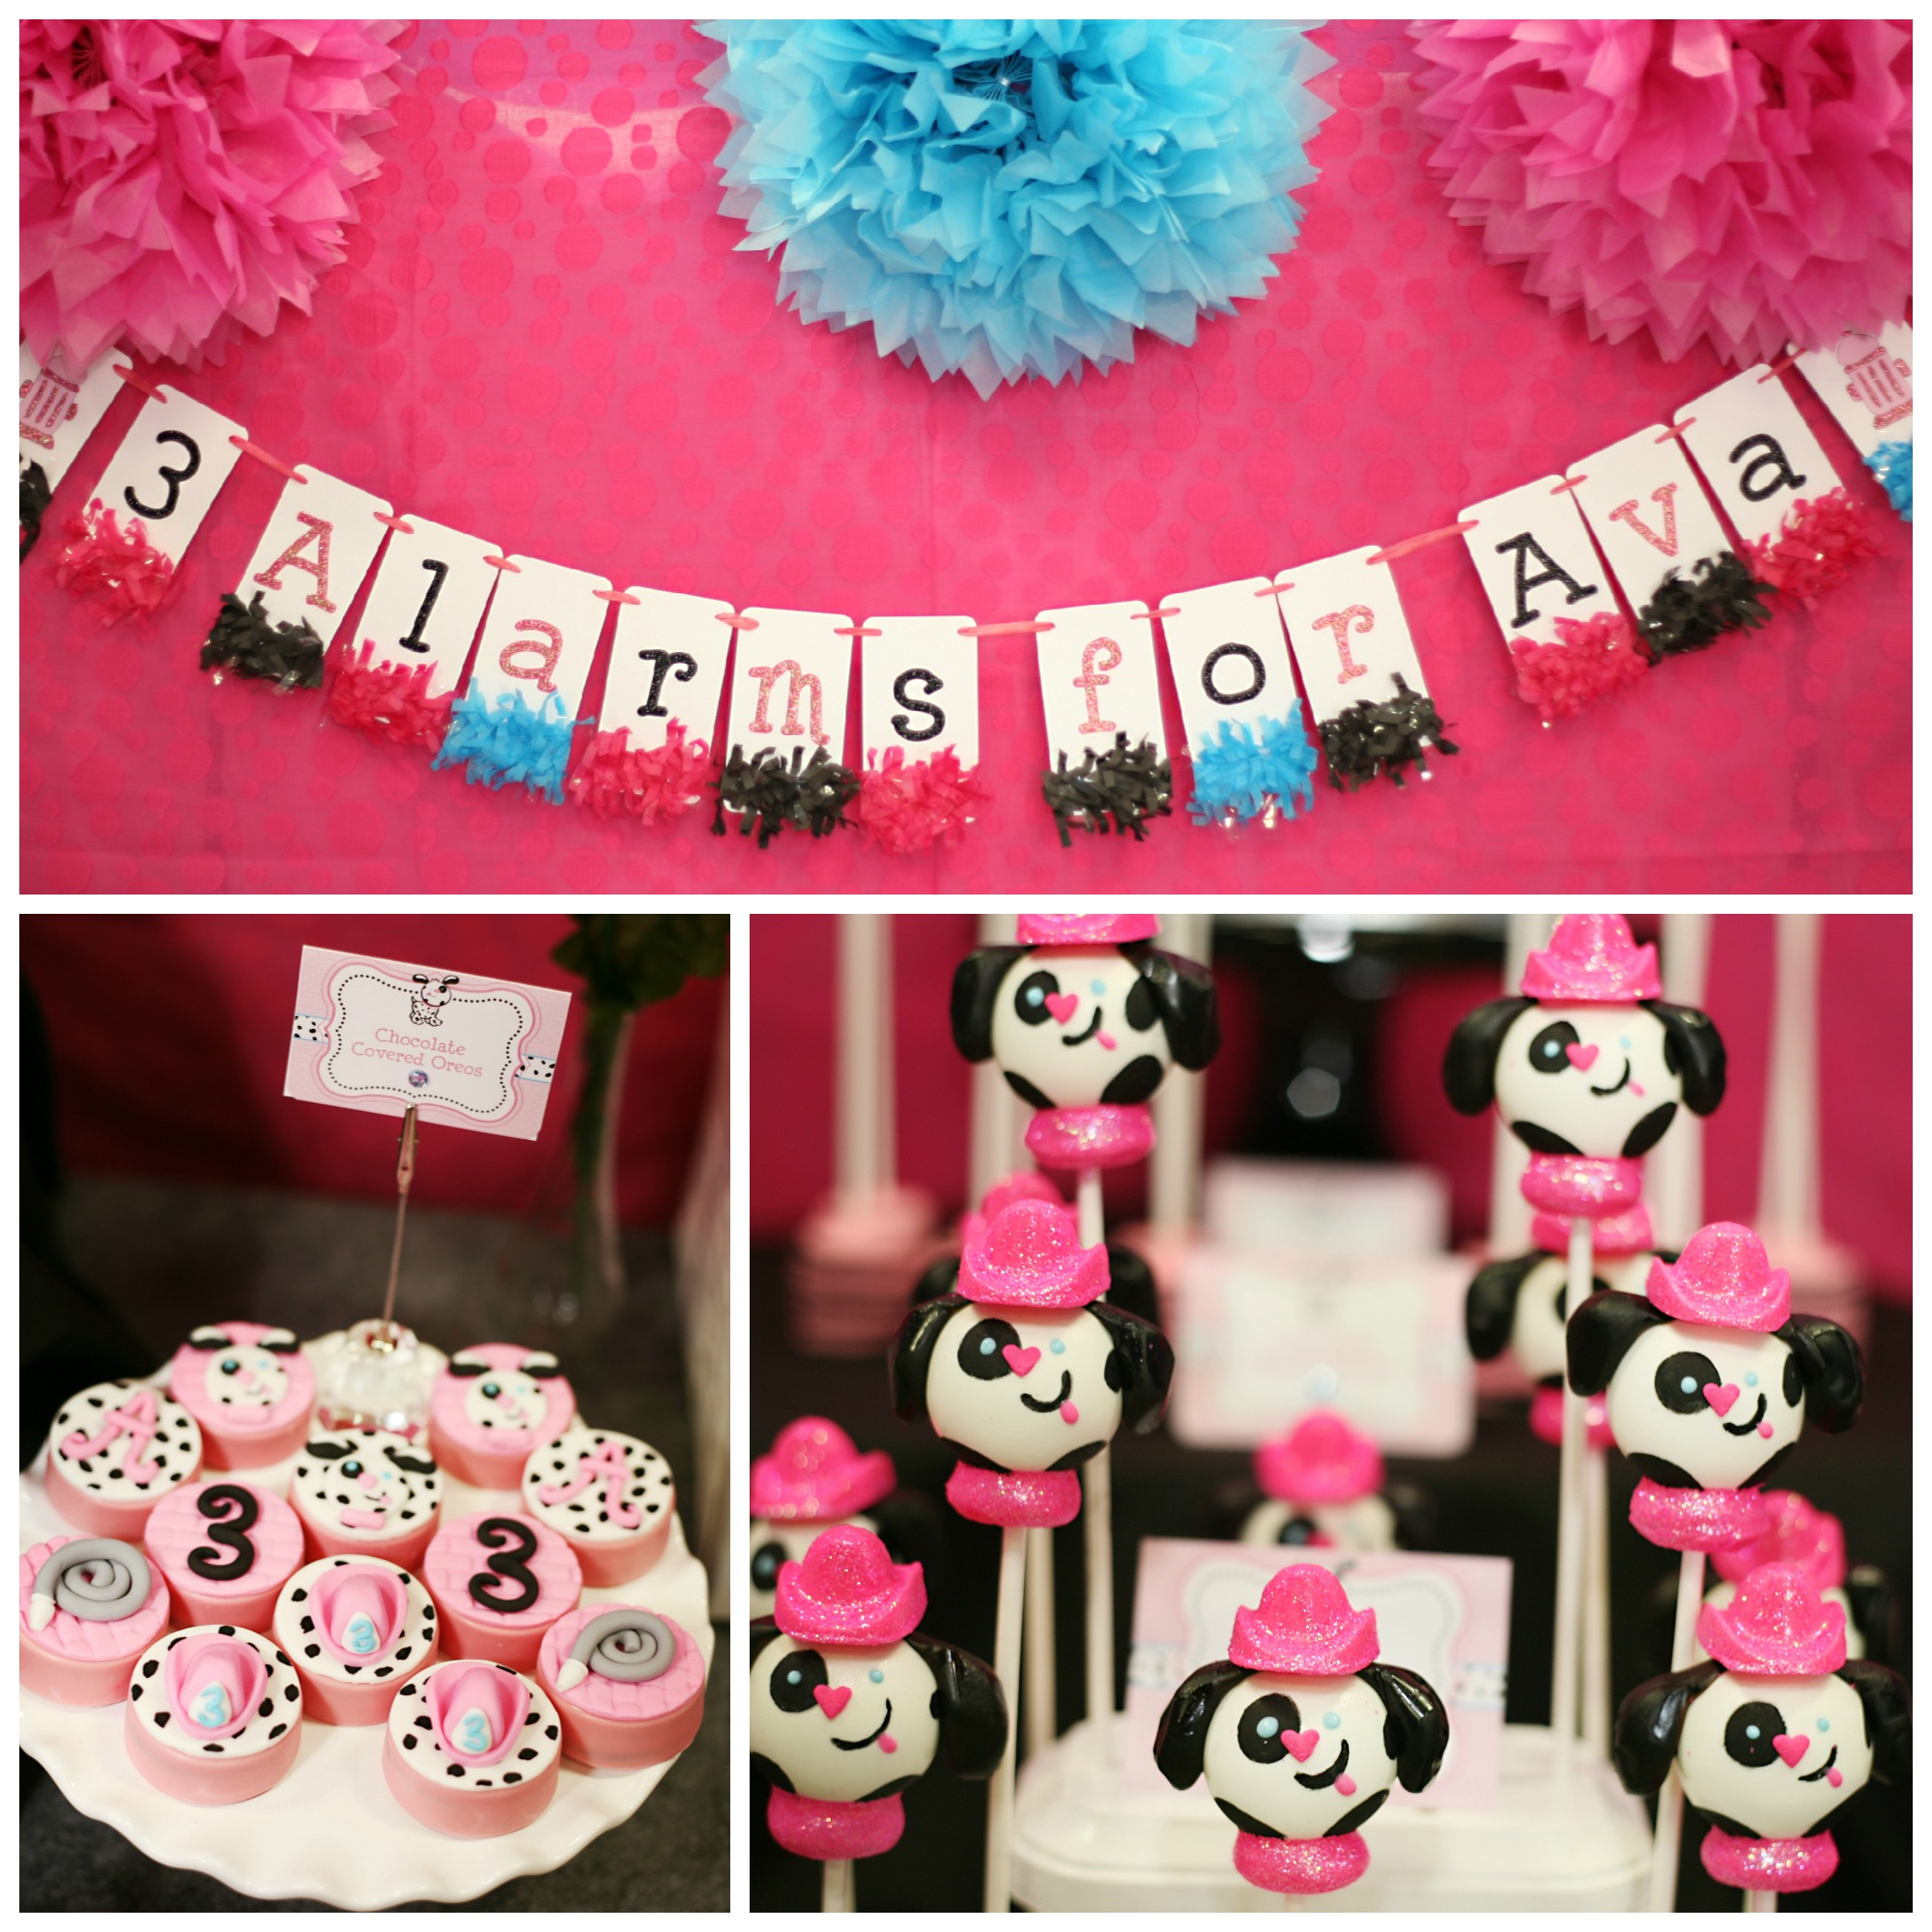 Girly Pink Firefighter Party!